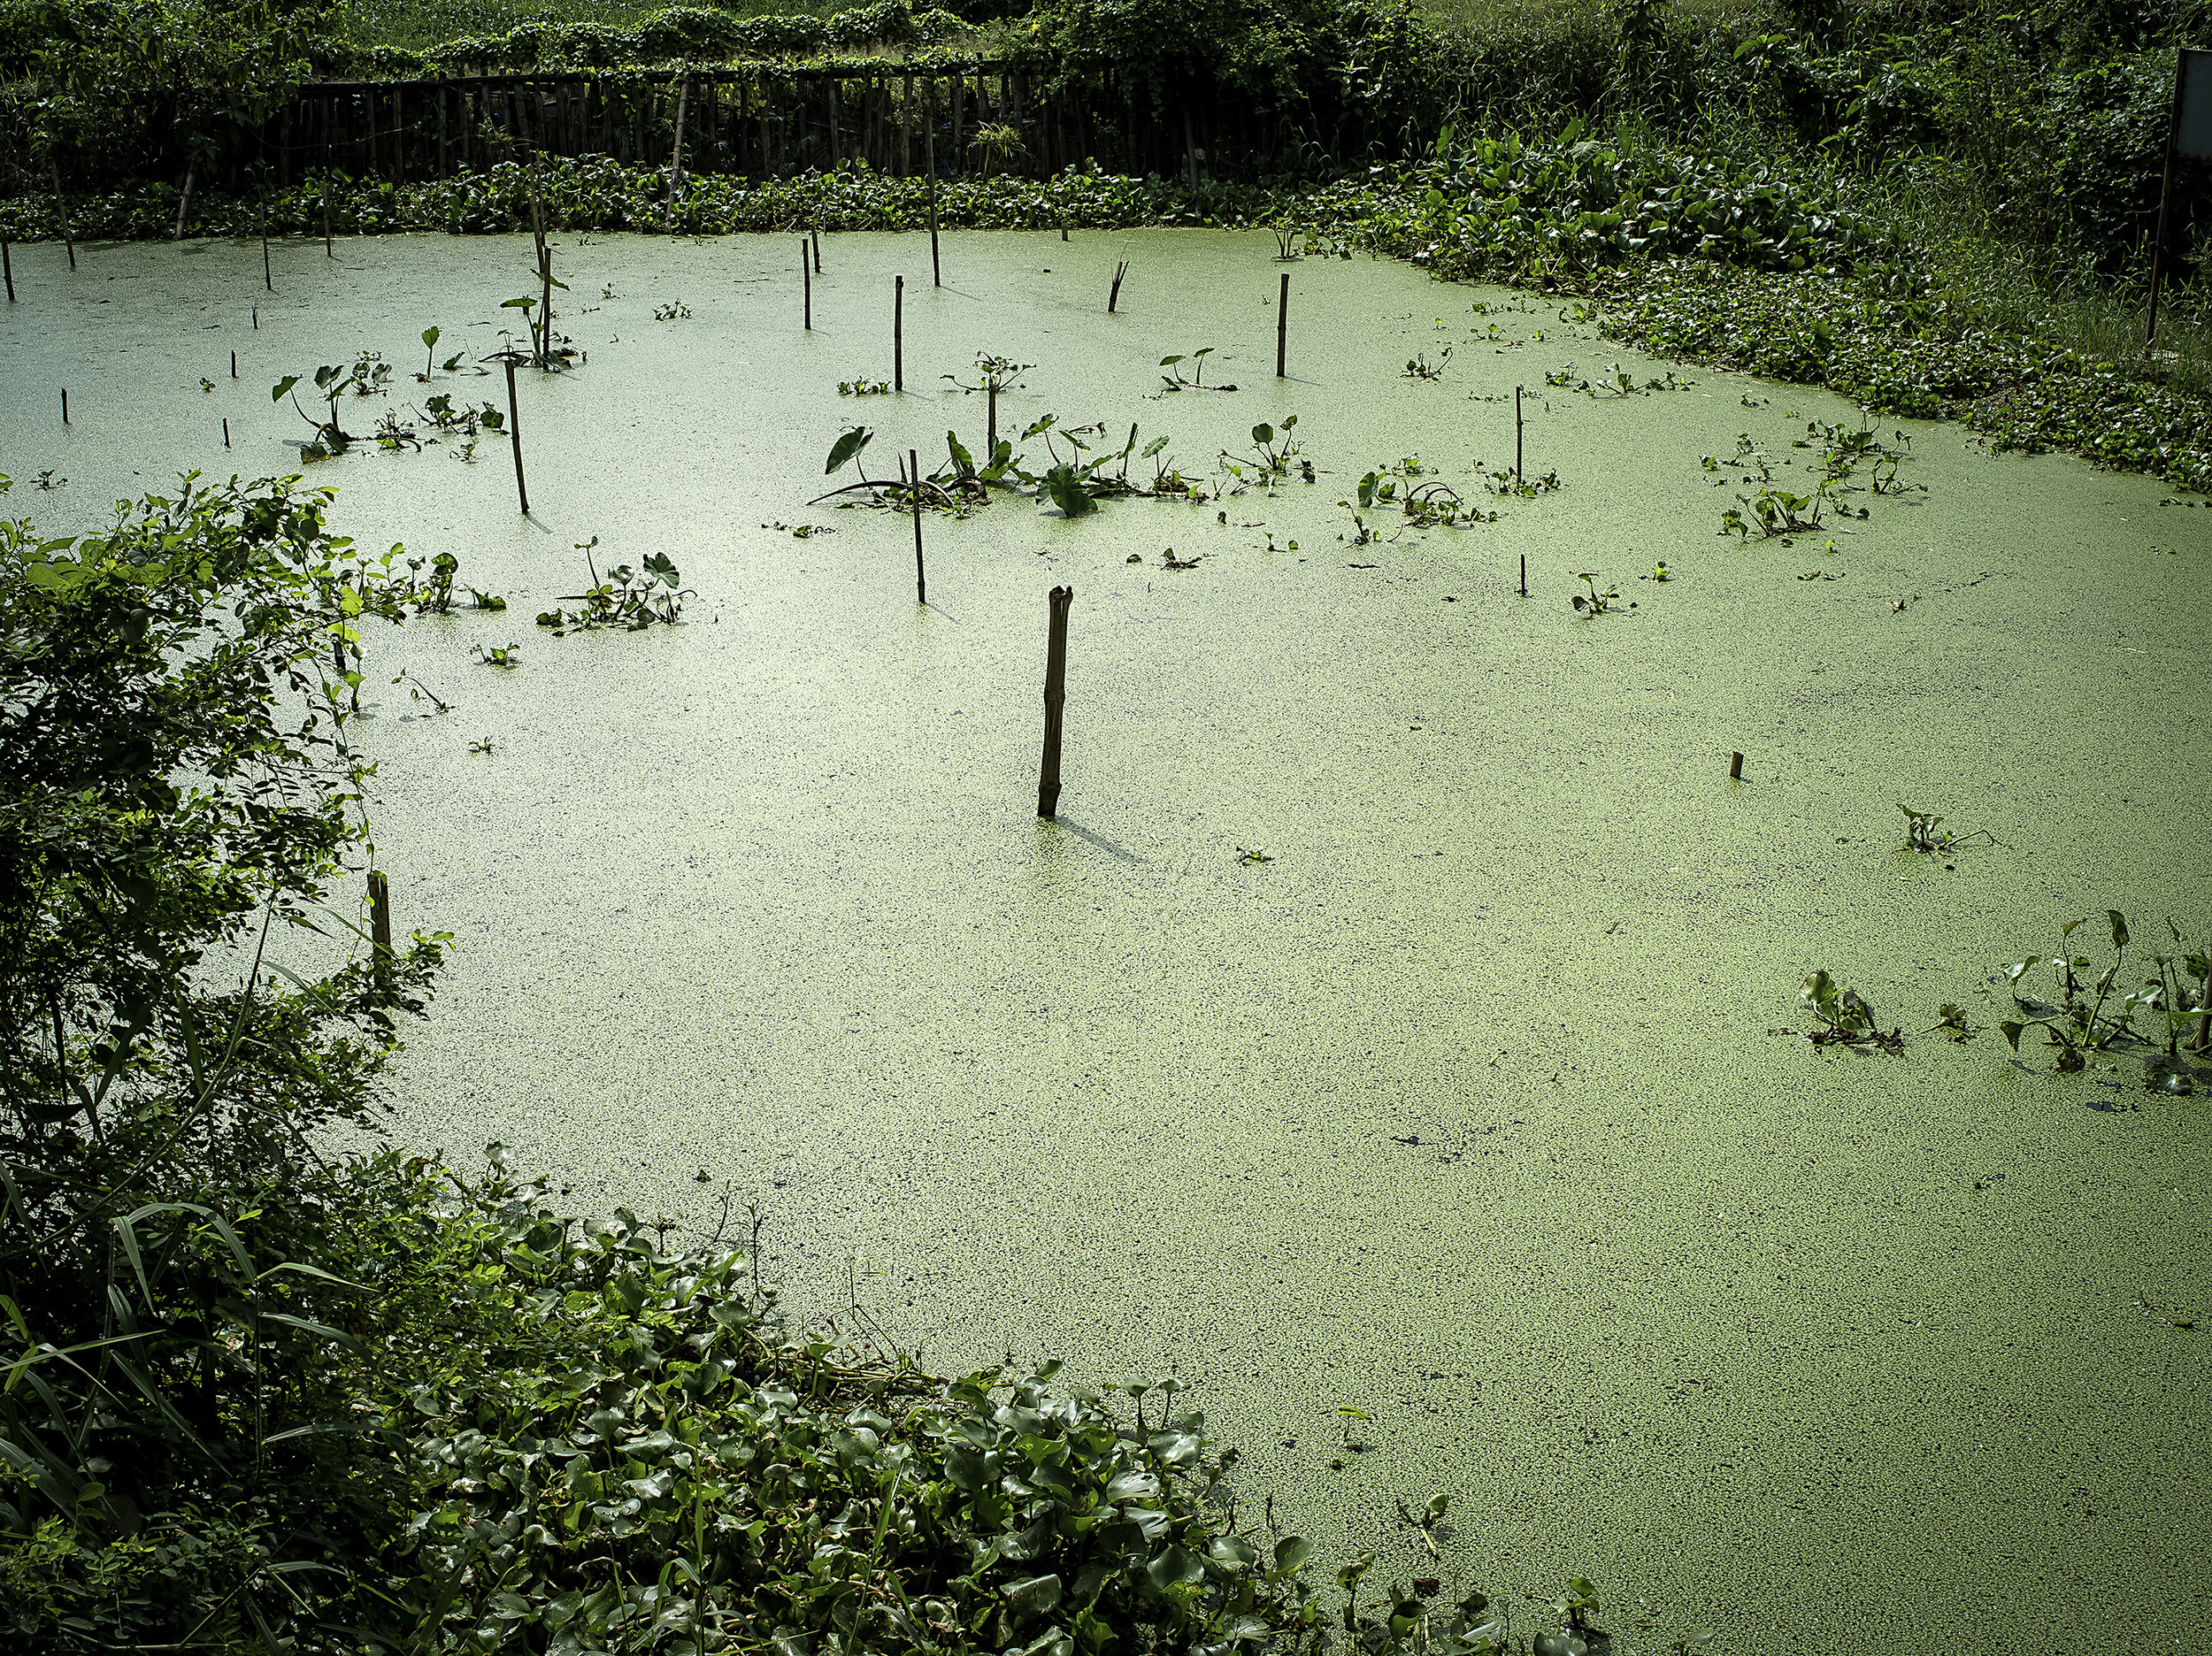 Duckweed at Narayanganj waste dump area. Duckweed is an aquatic plant that cleans waste waster.